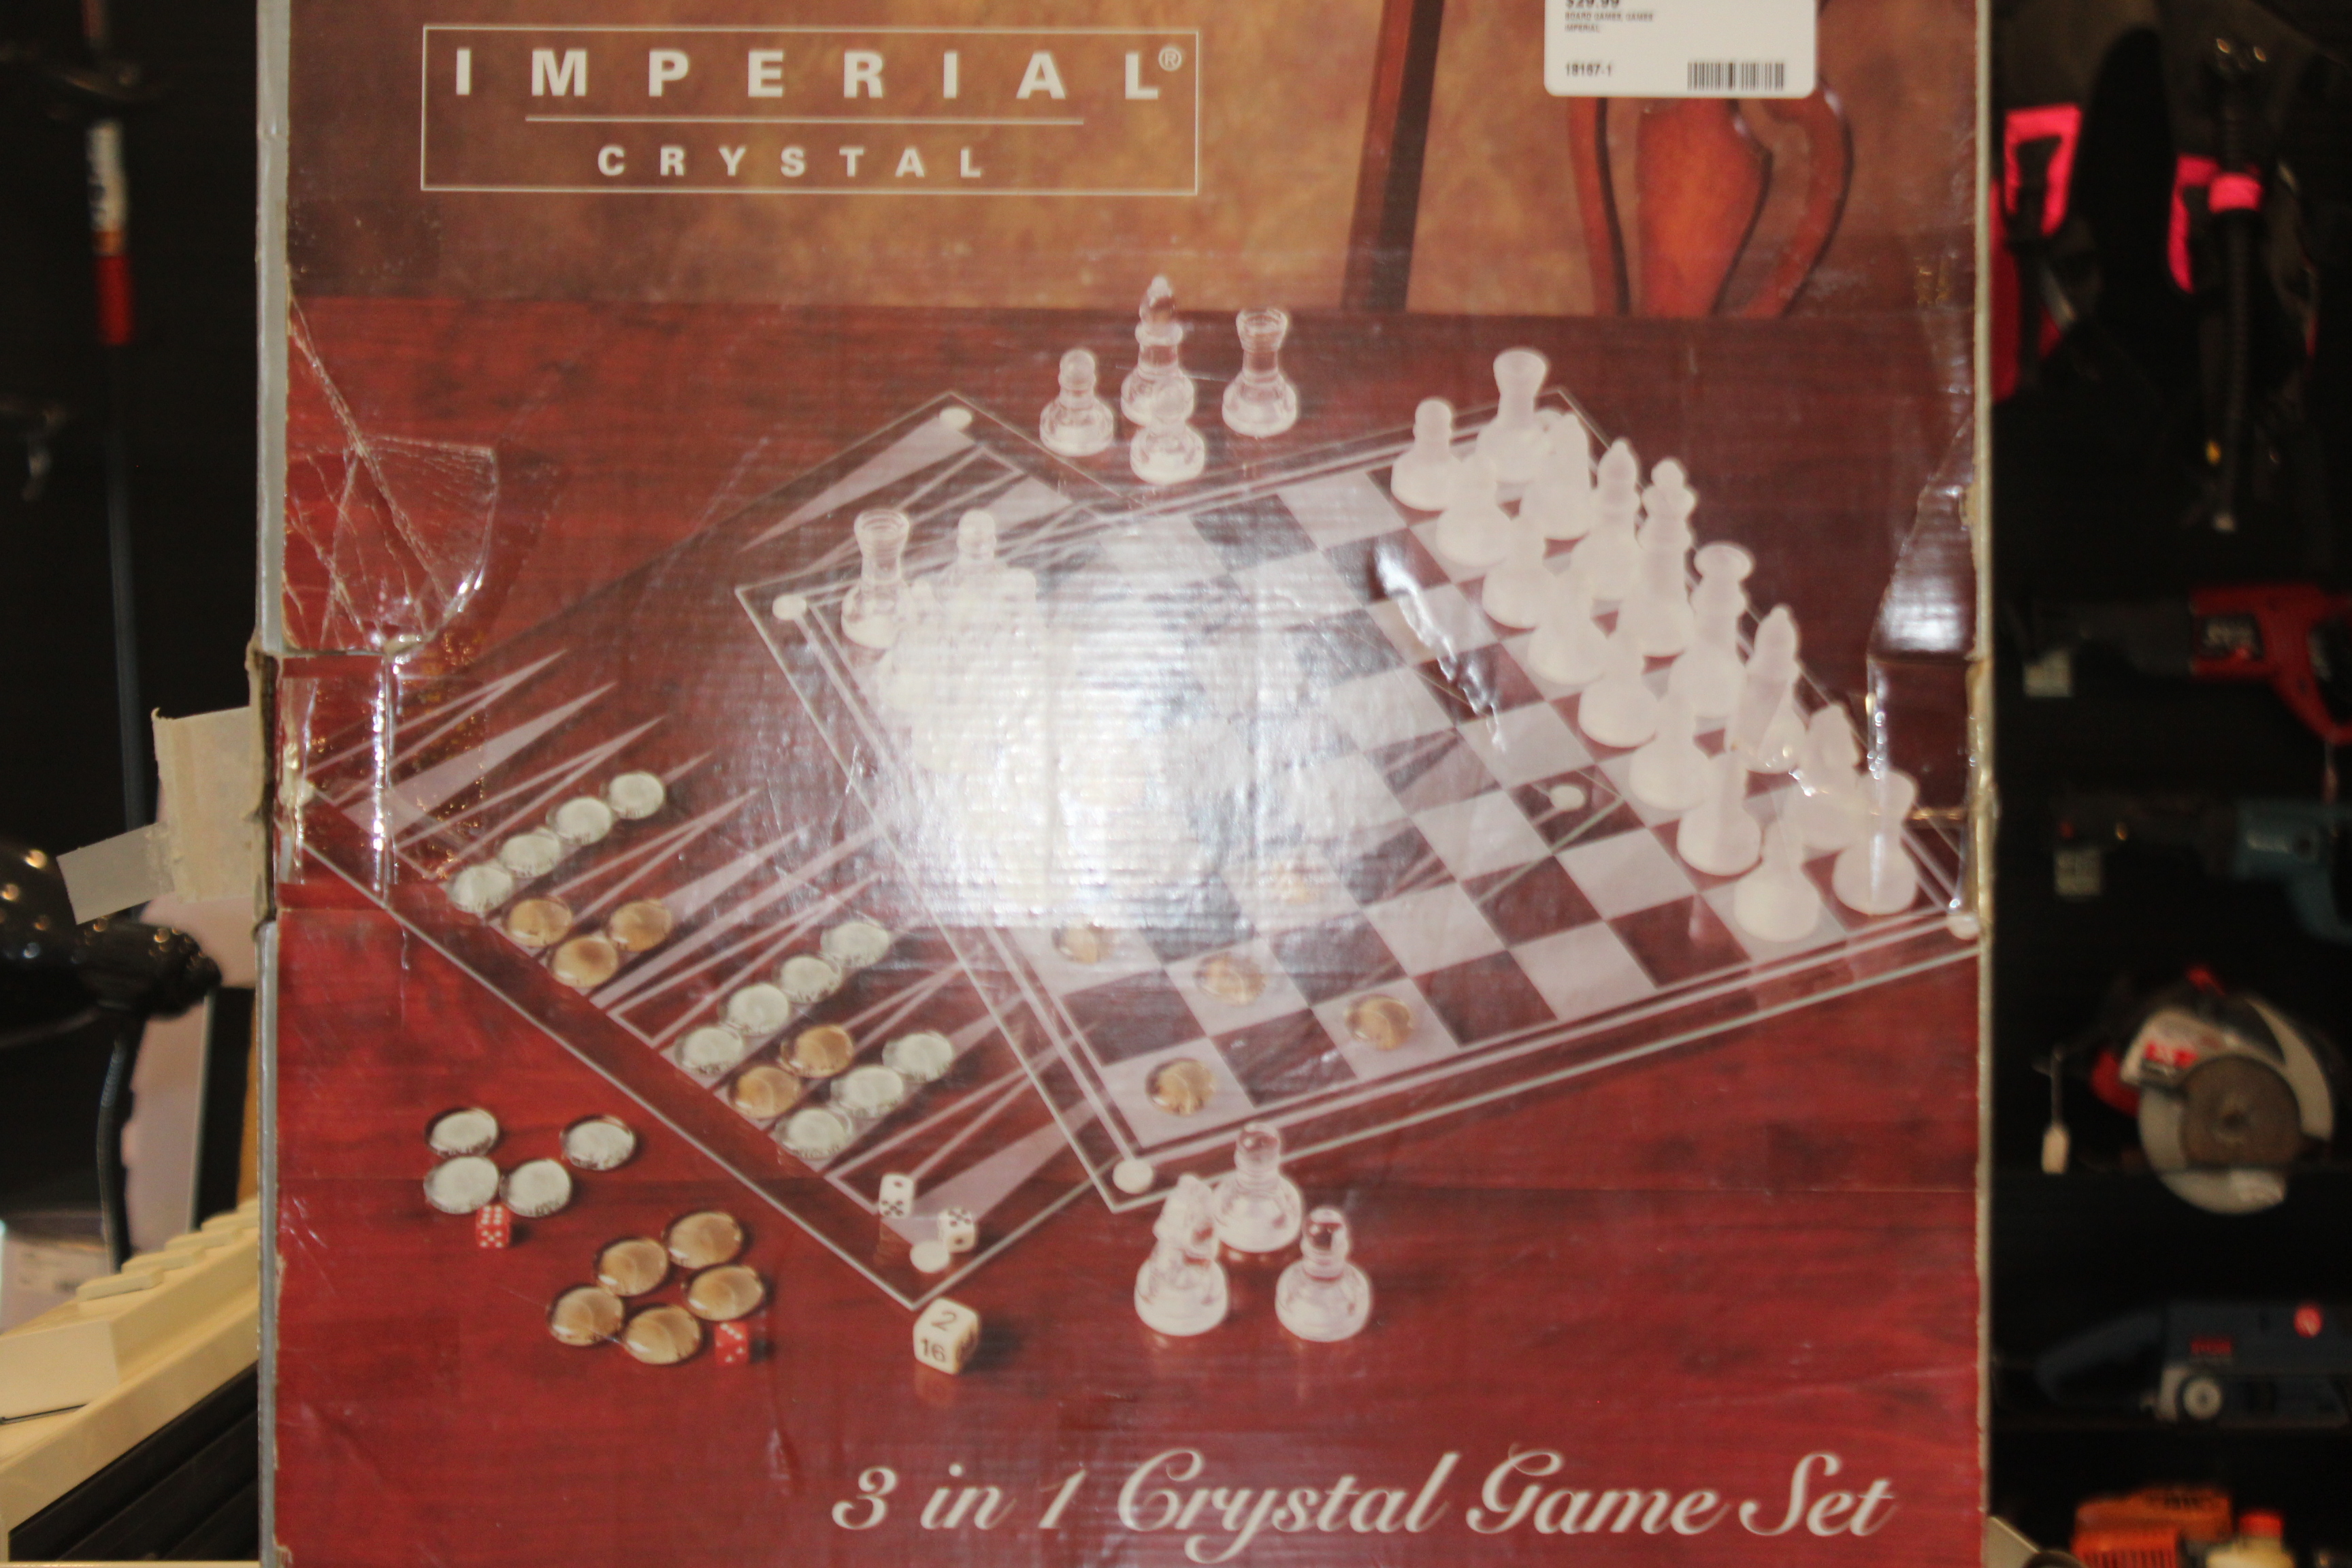 Imperial Crystal 3 in 1 Crystal Game Set